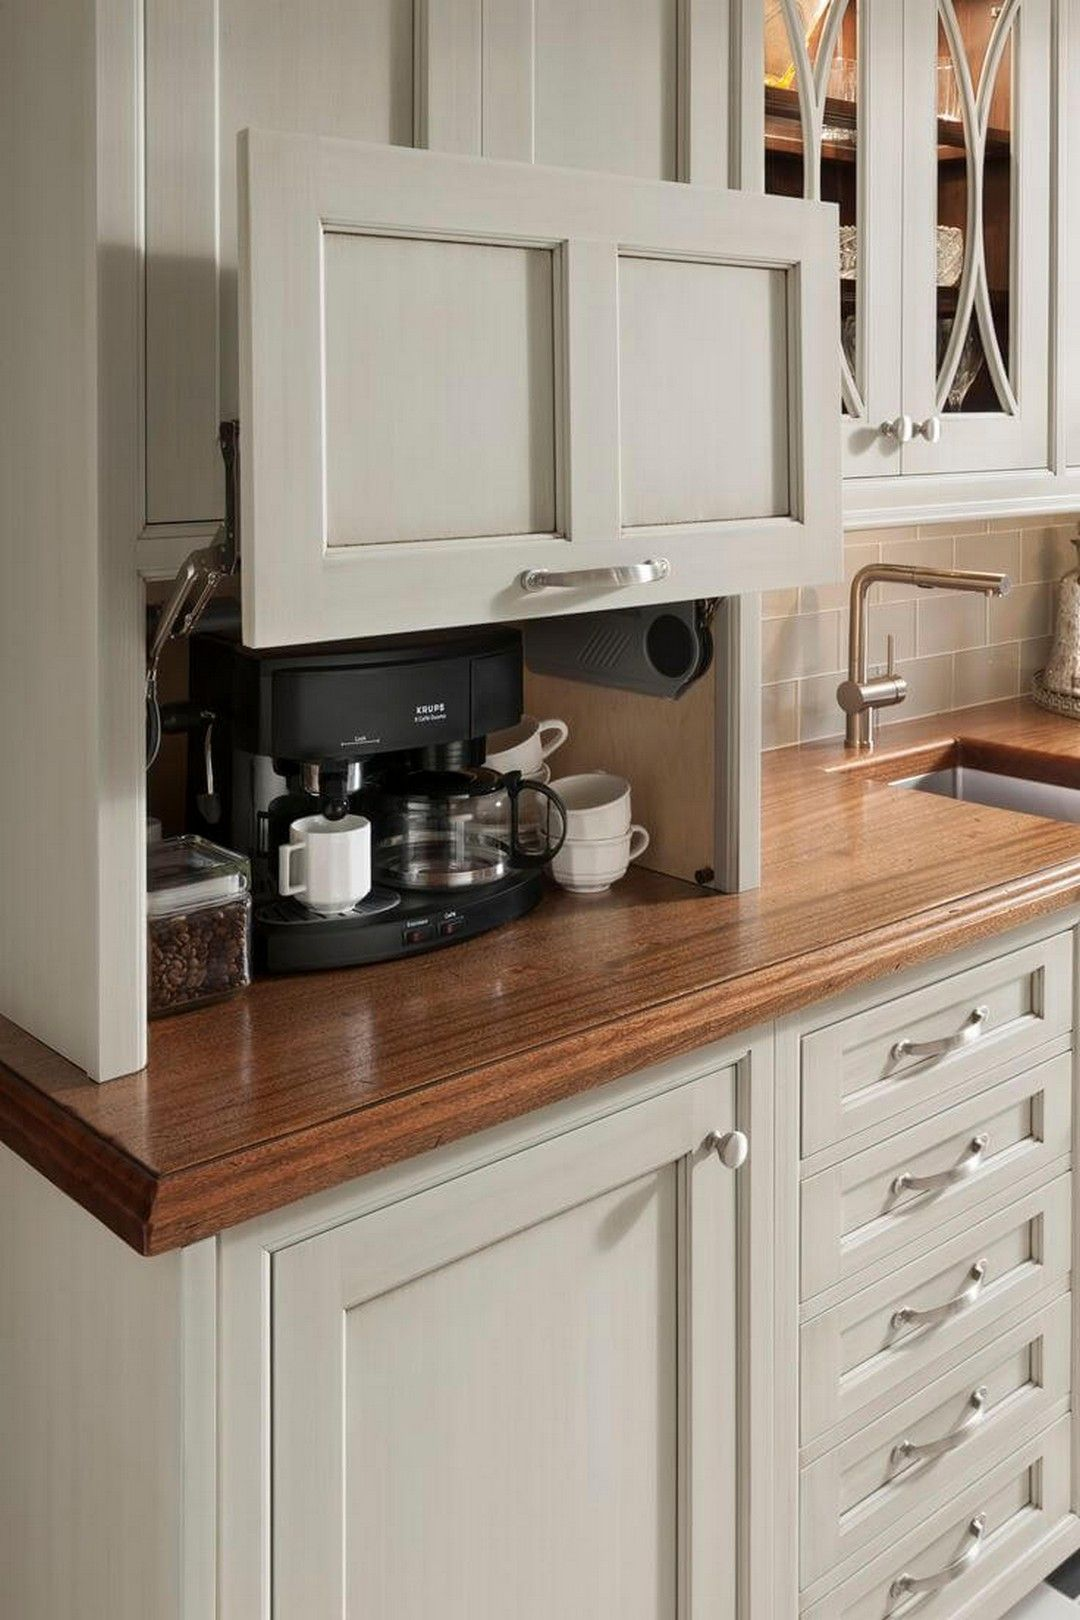 Small Kitchen Remodel And Storage Hacks On A Budget  Https://www.goodnewsarchitecture